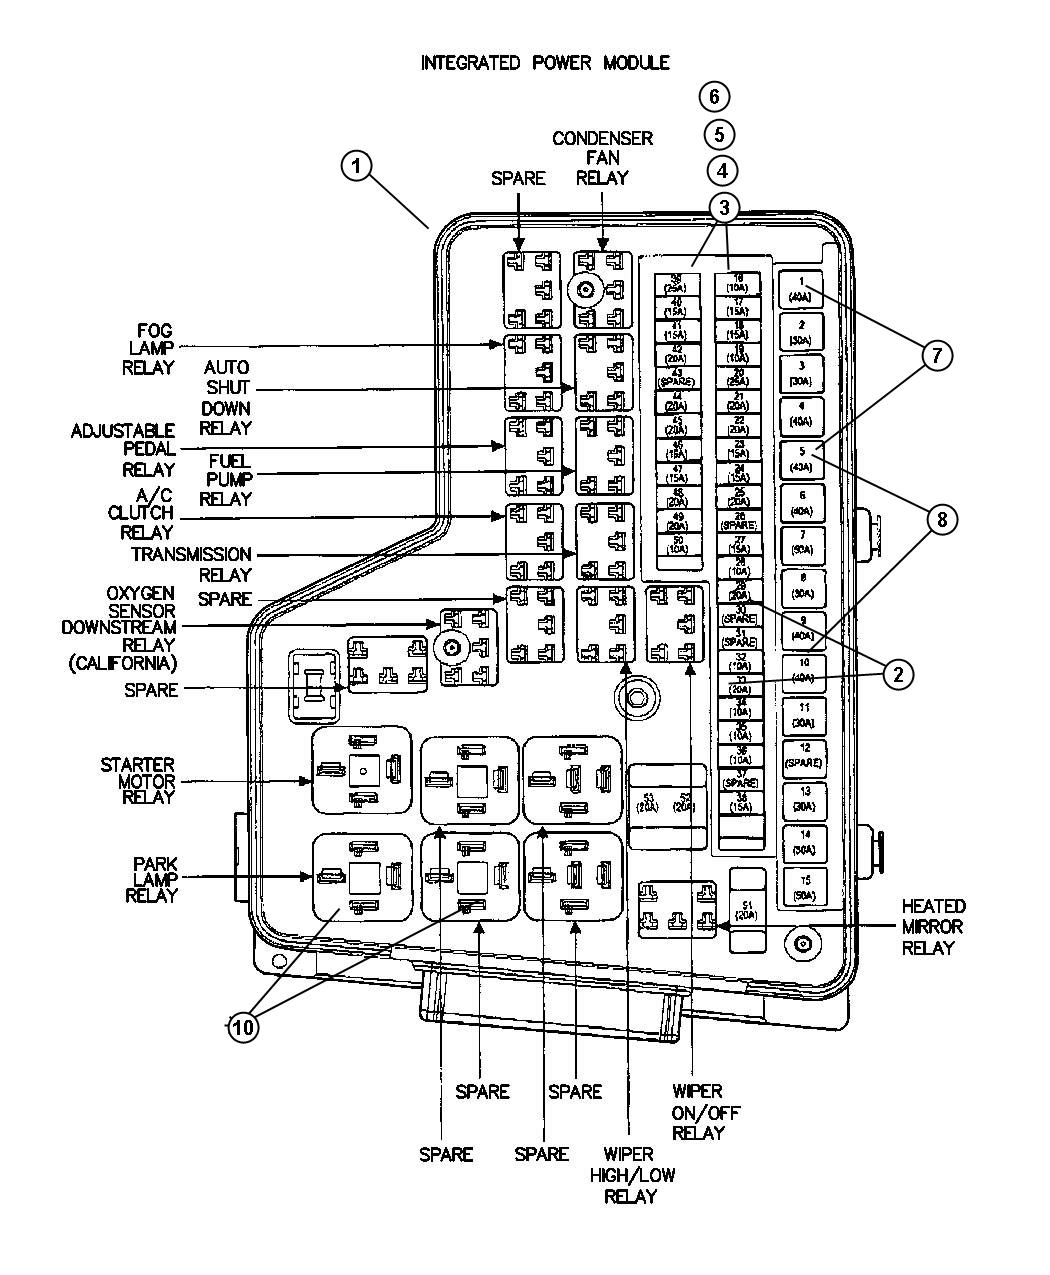 Dodge Ram Module Totally Integrated Power